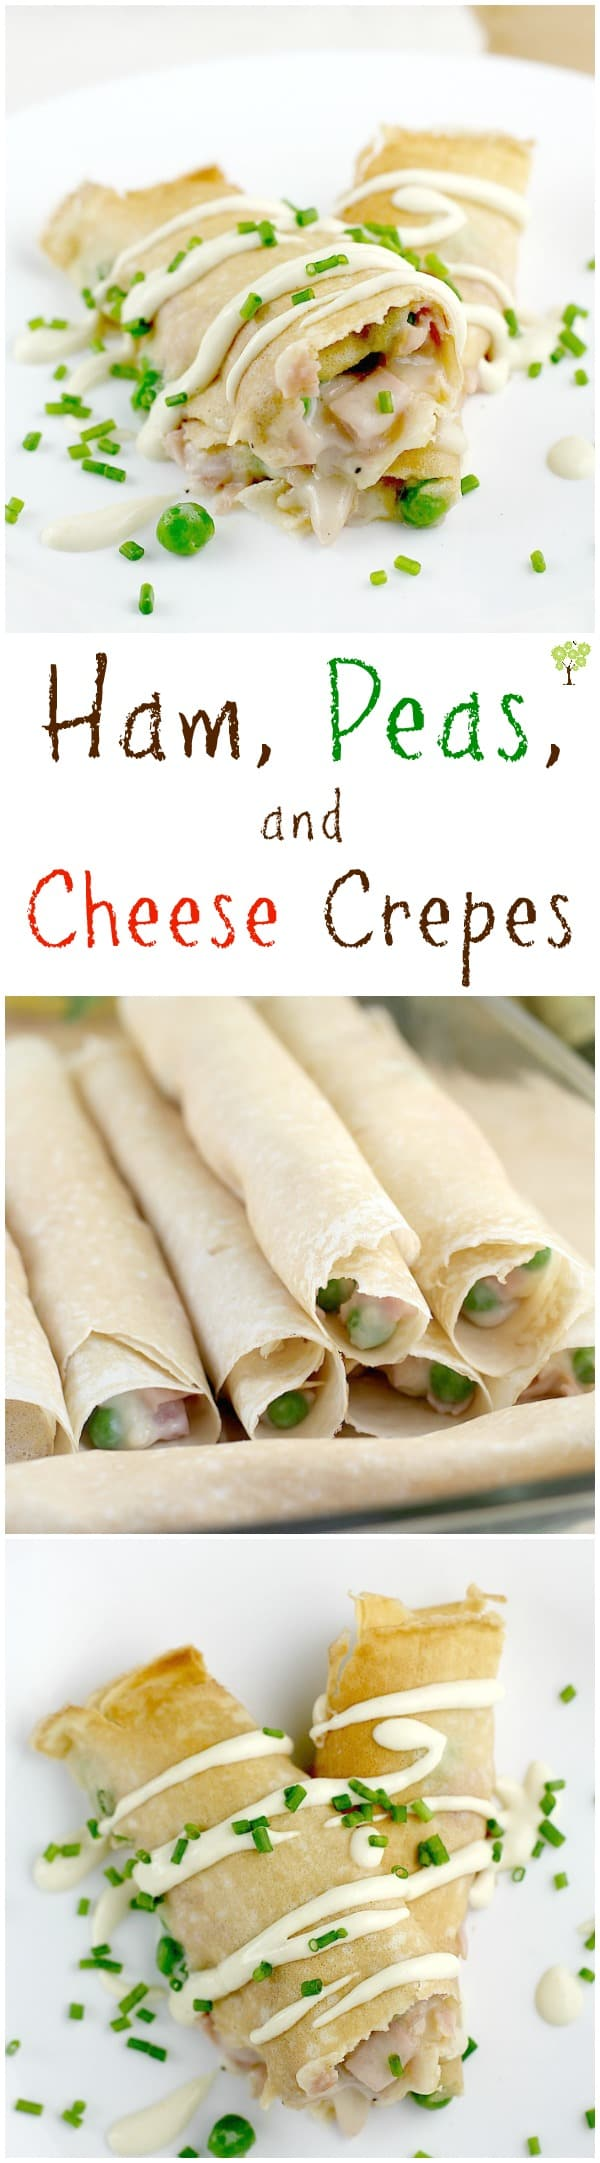 Ham, Peas, and Cheese Crepes http://wp.me/p4qC4h-3Id #BeyondTheSandwich #ad @Walmart